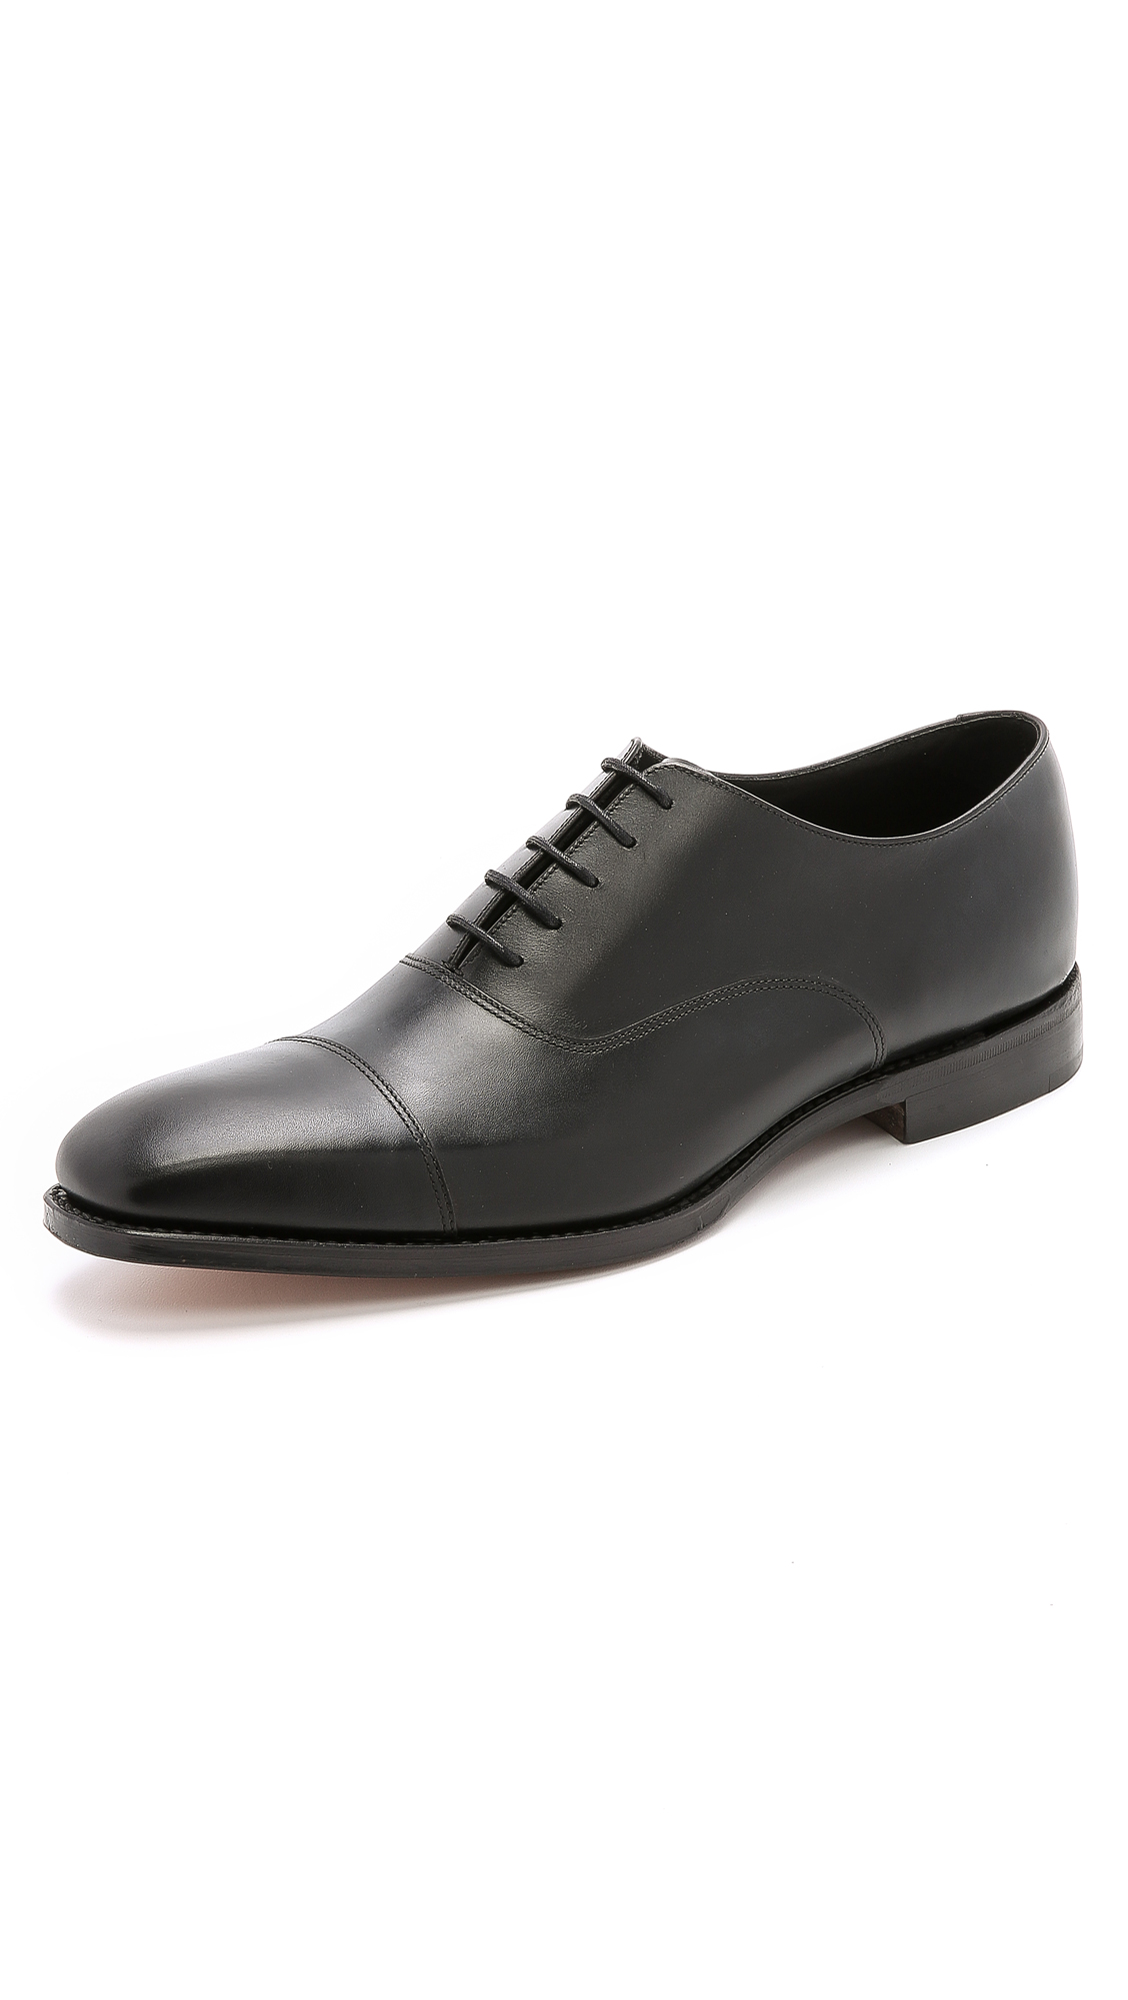 Loake 1880 Rothschild Cap Toe Oxfords